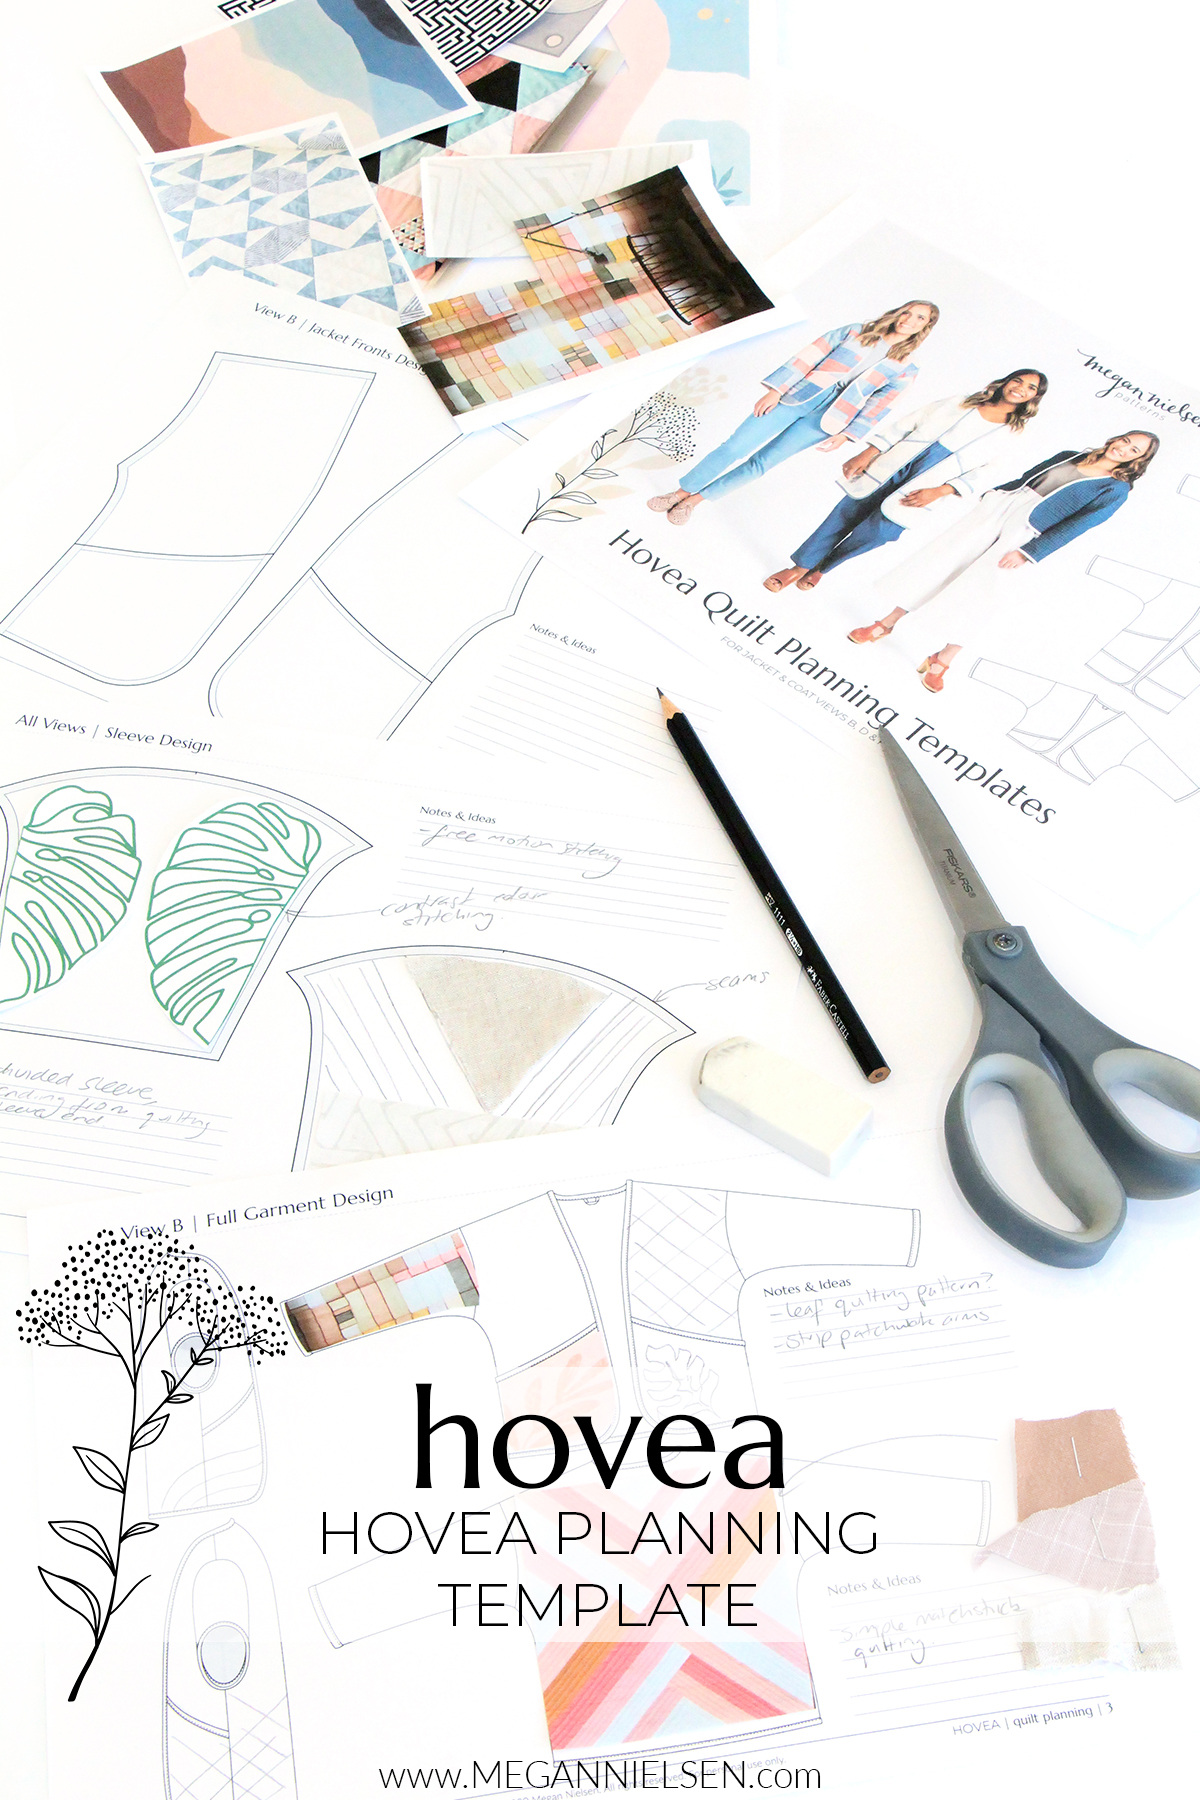 Hovea Planning Template